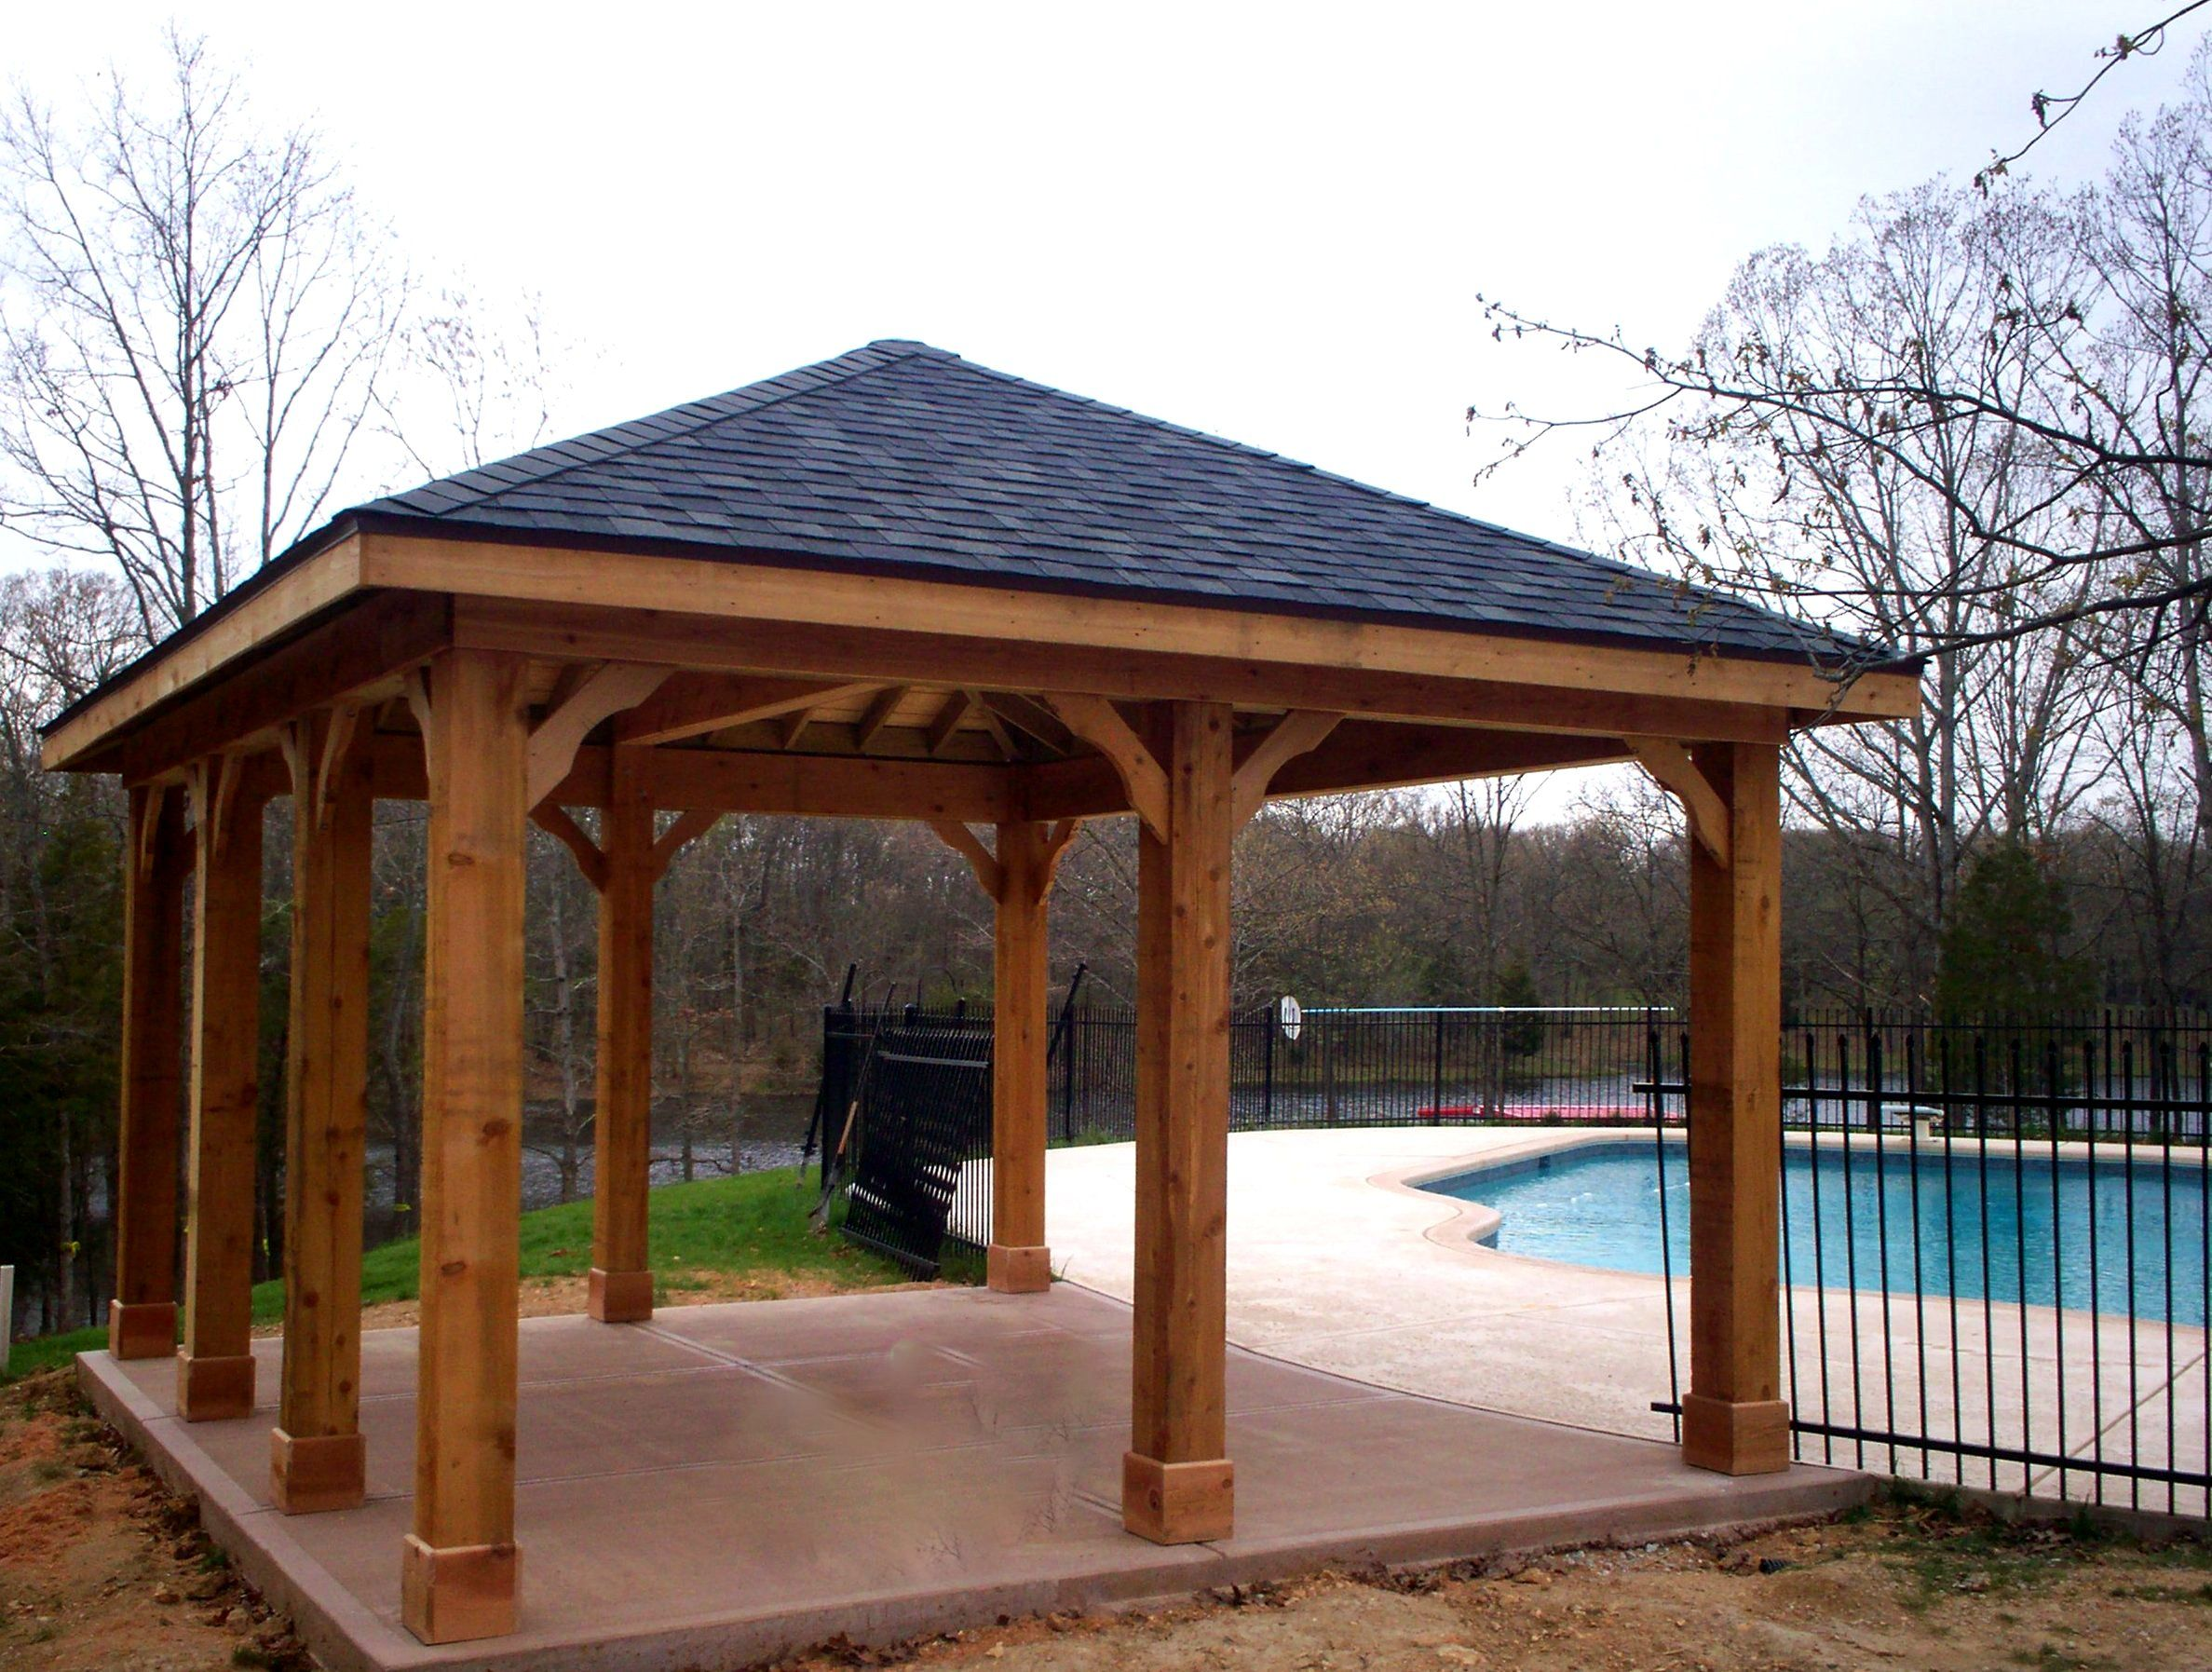 patio covers for shade and style | house ideas | covered